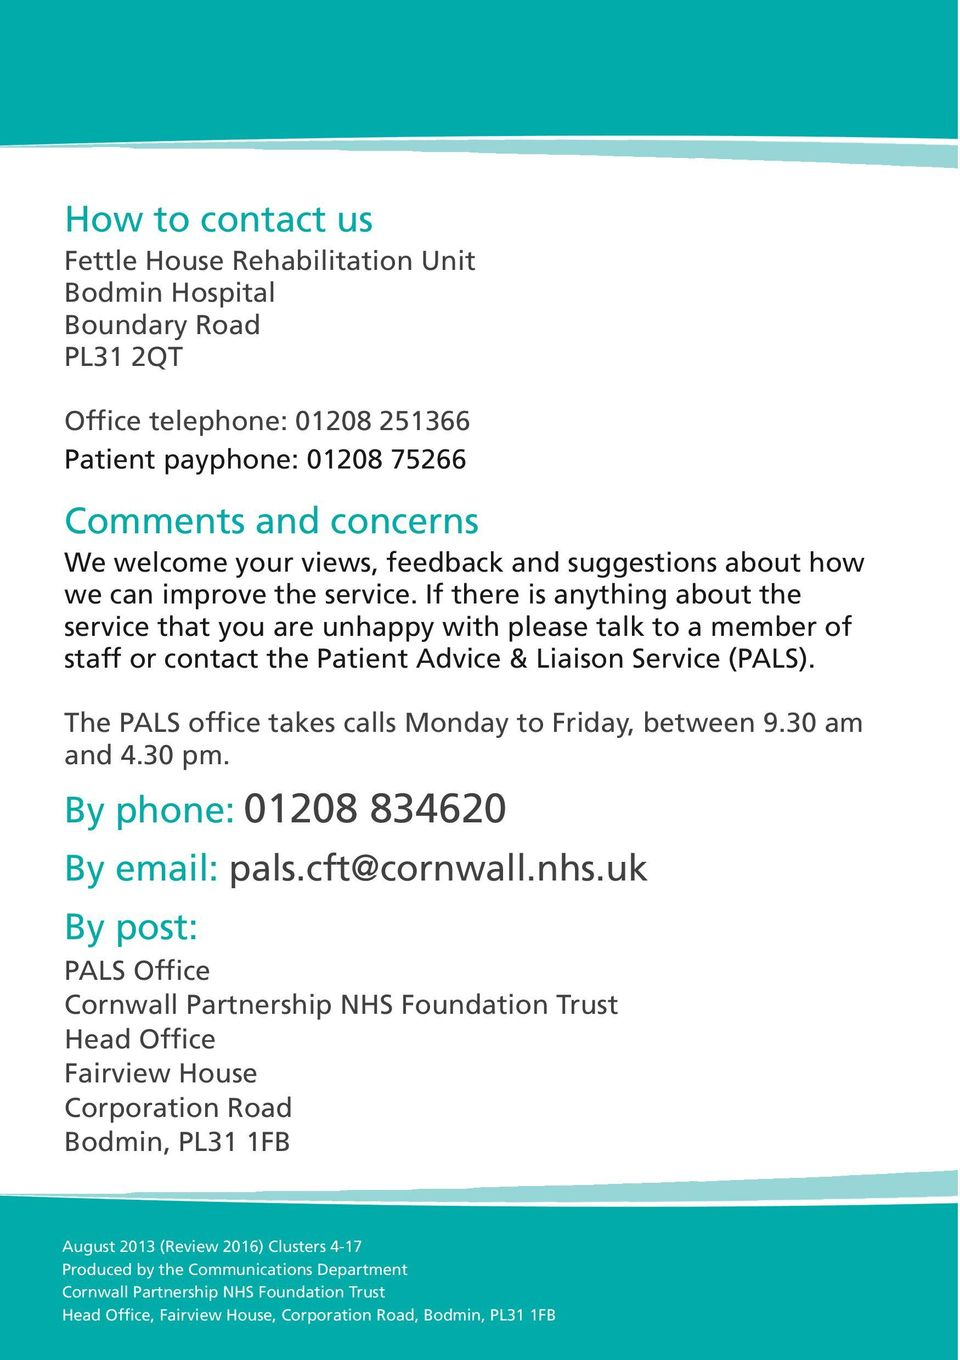 If there is anything about the service that you are unhappy with please talk to a member of staff or contact the Patient Advice & Liaison Service (PALS).